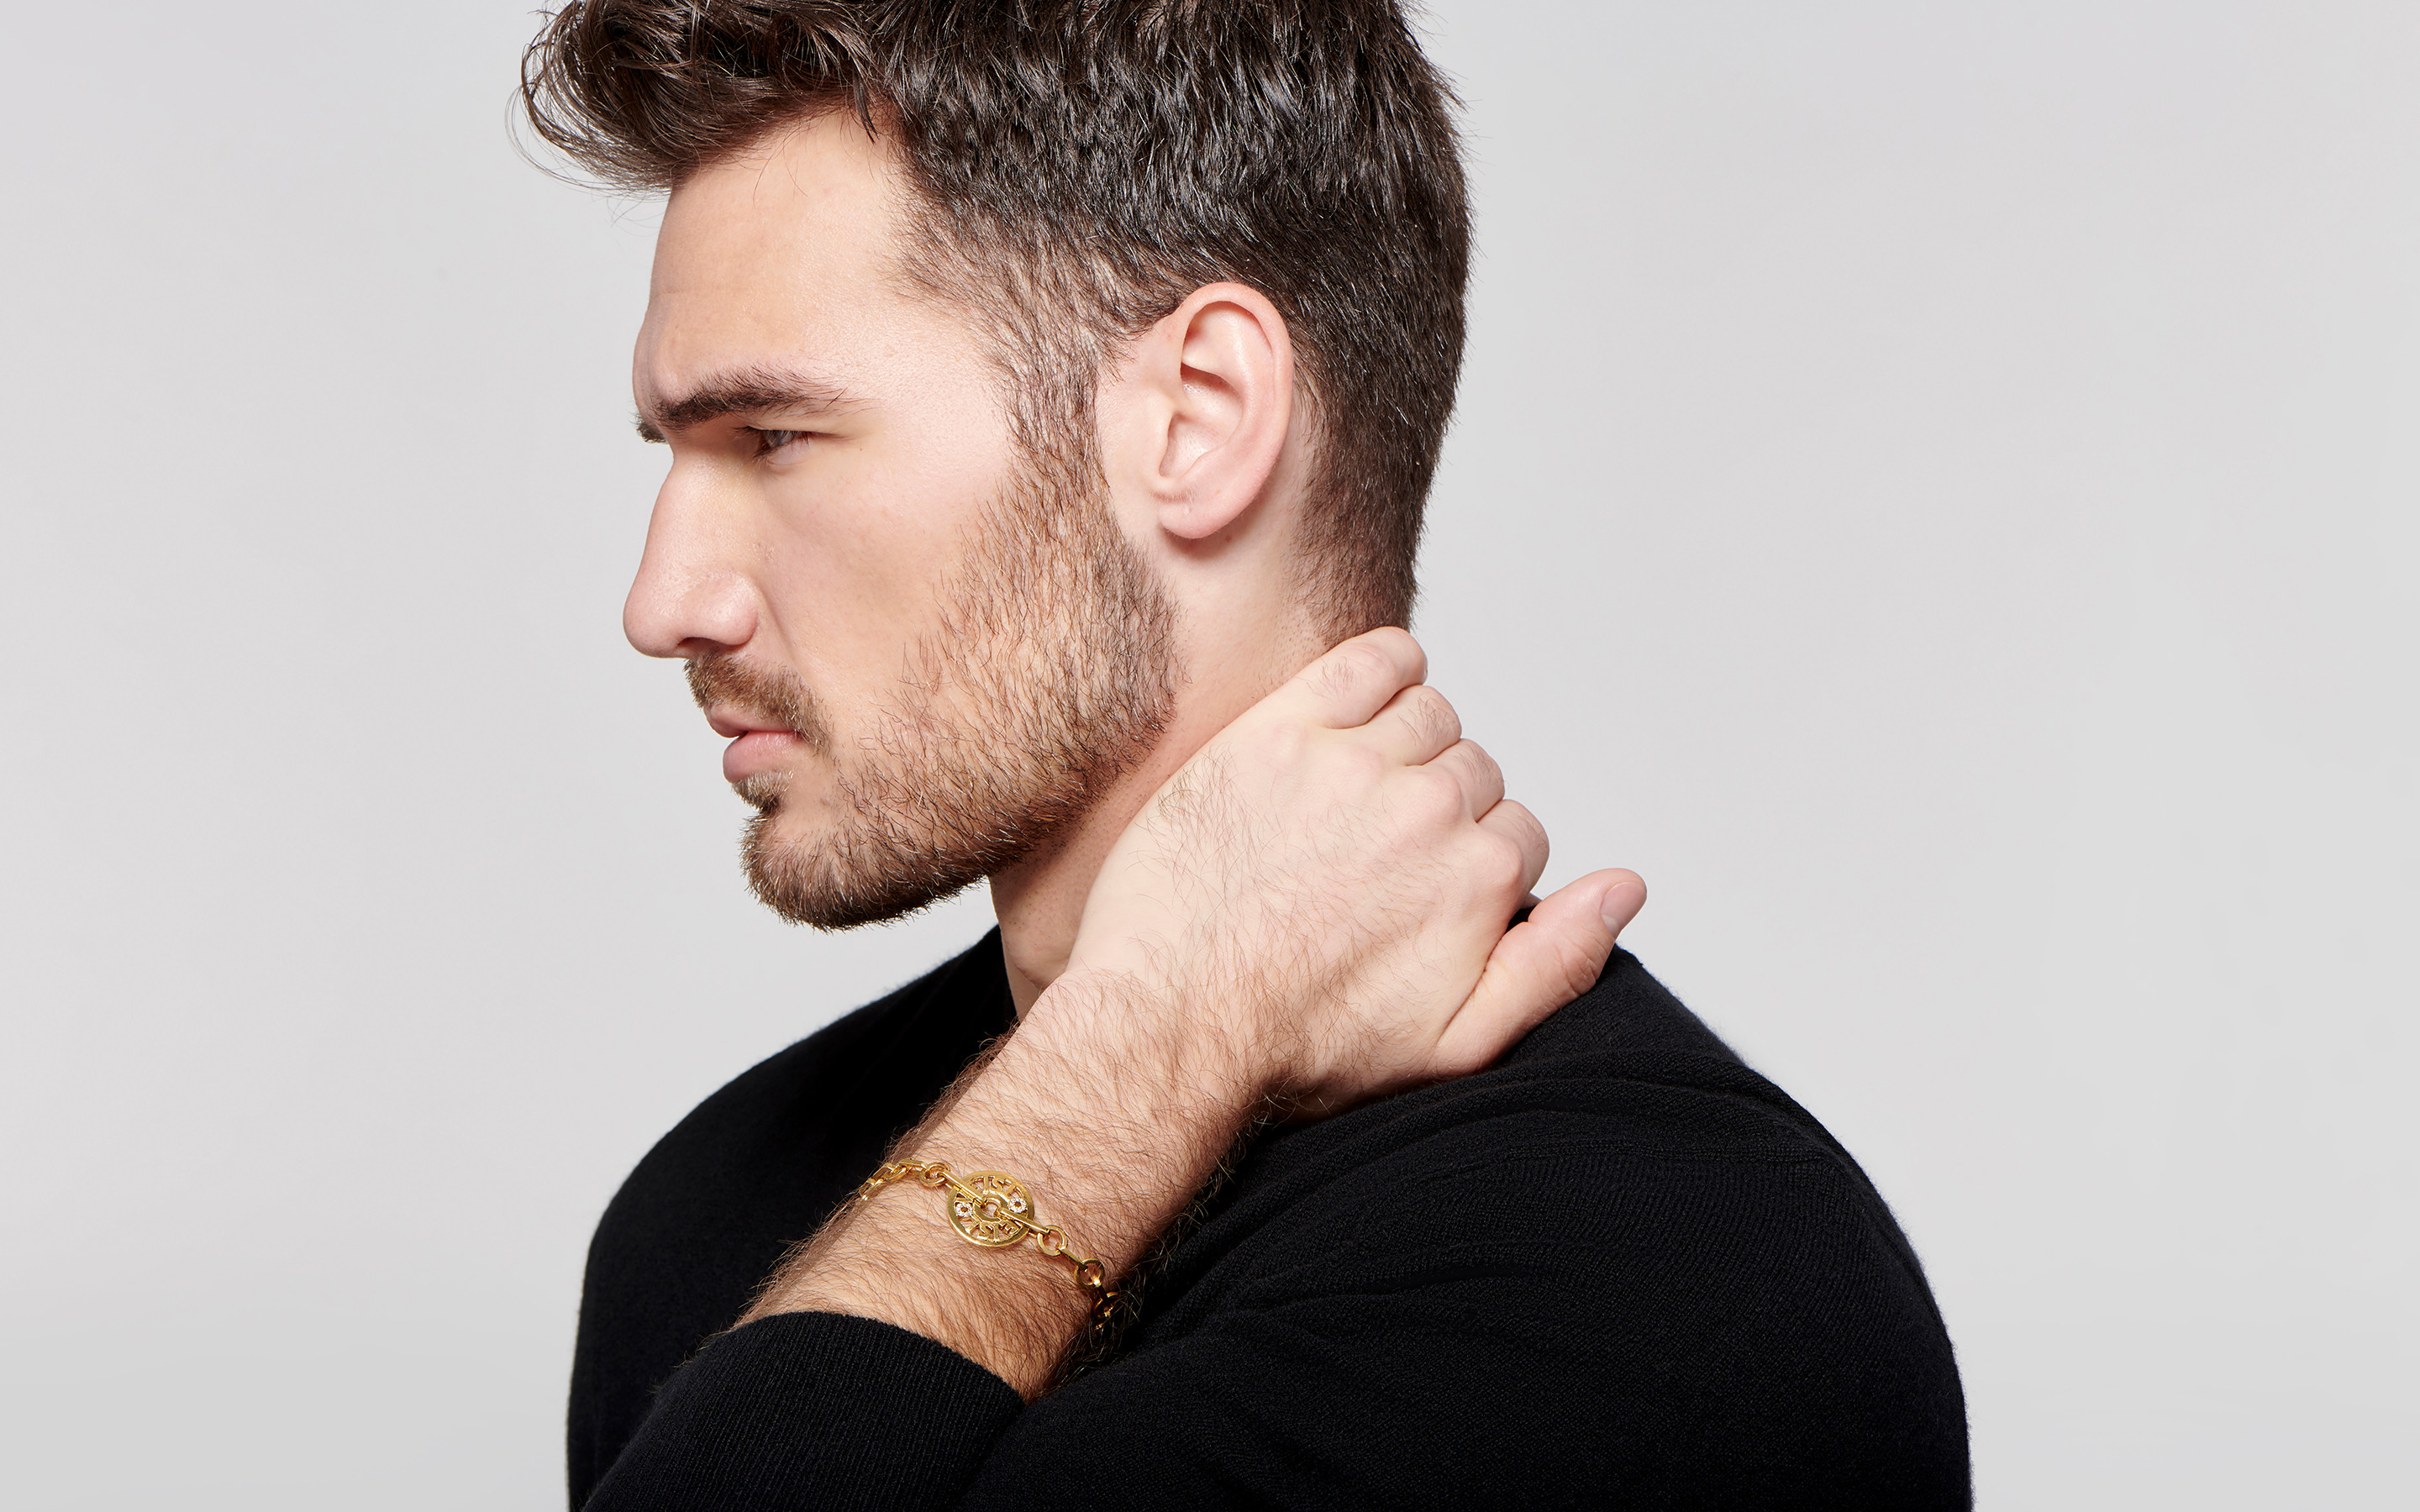 stunning white male model shows off a beautiful 22 karat  gold bracelet